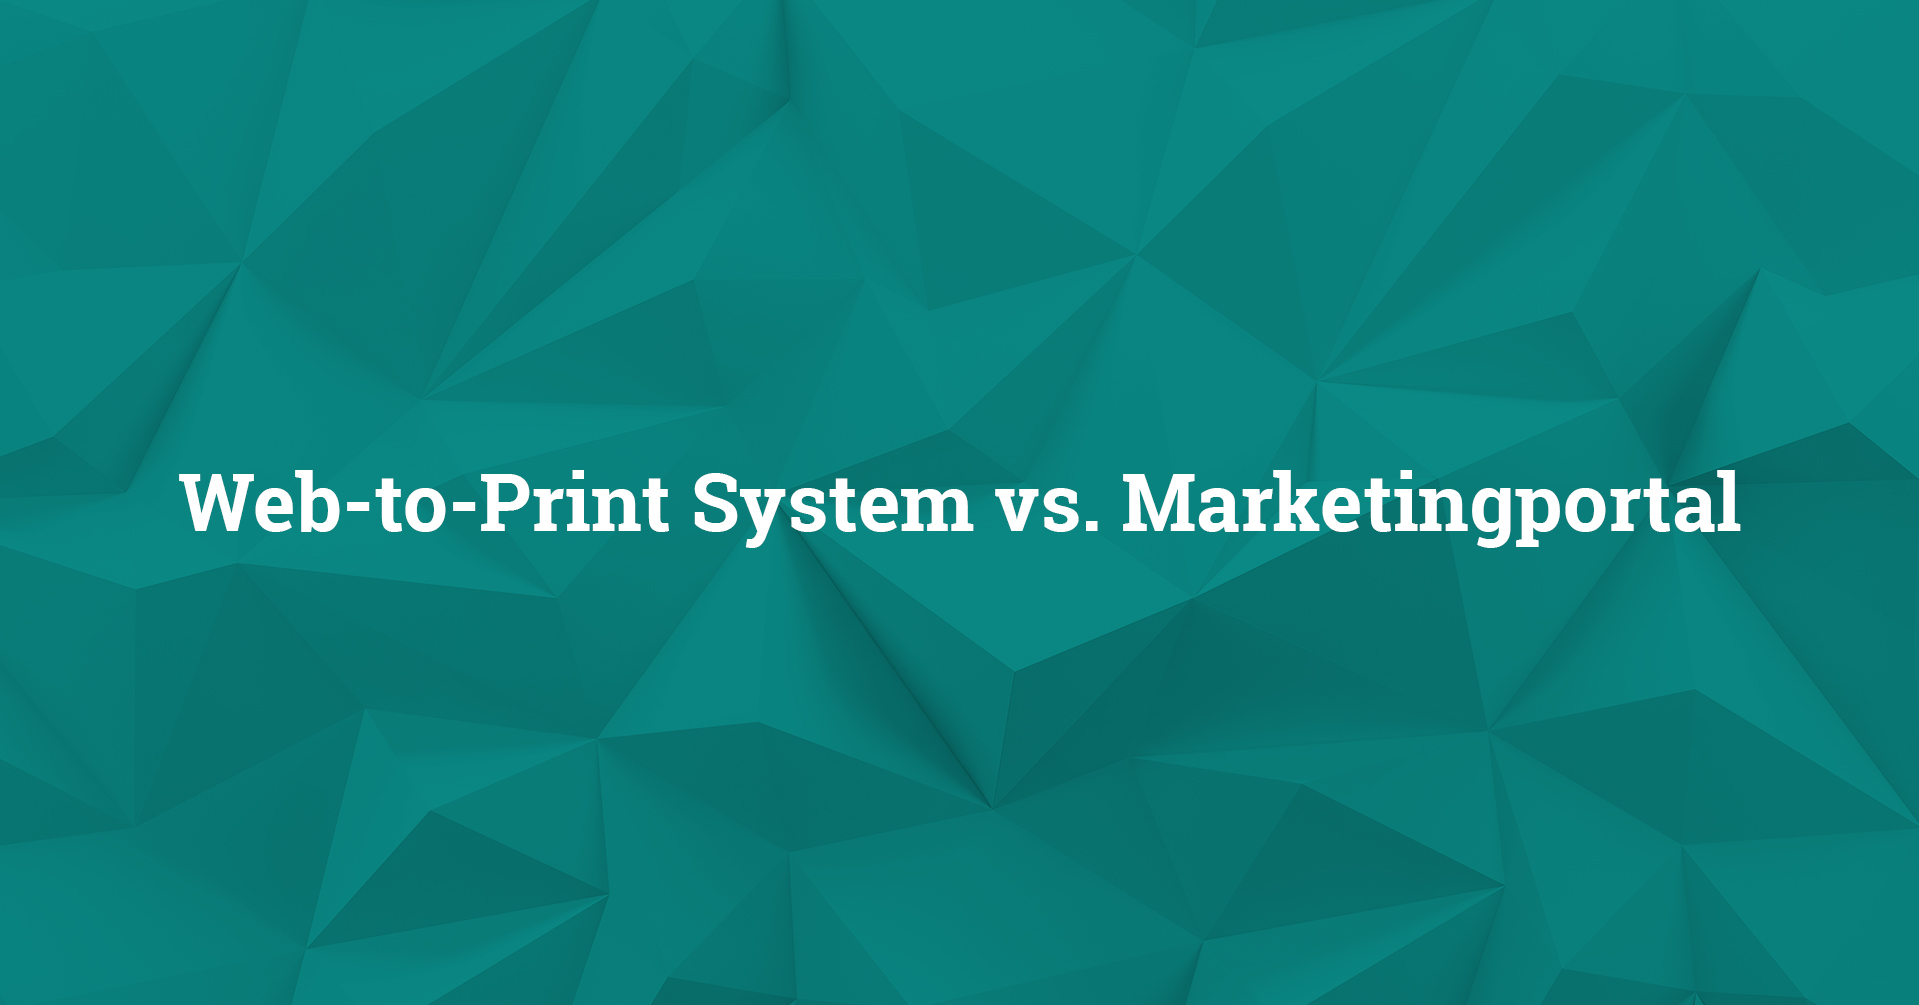 Web-to-Print System vs. Marketingportal